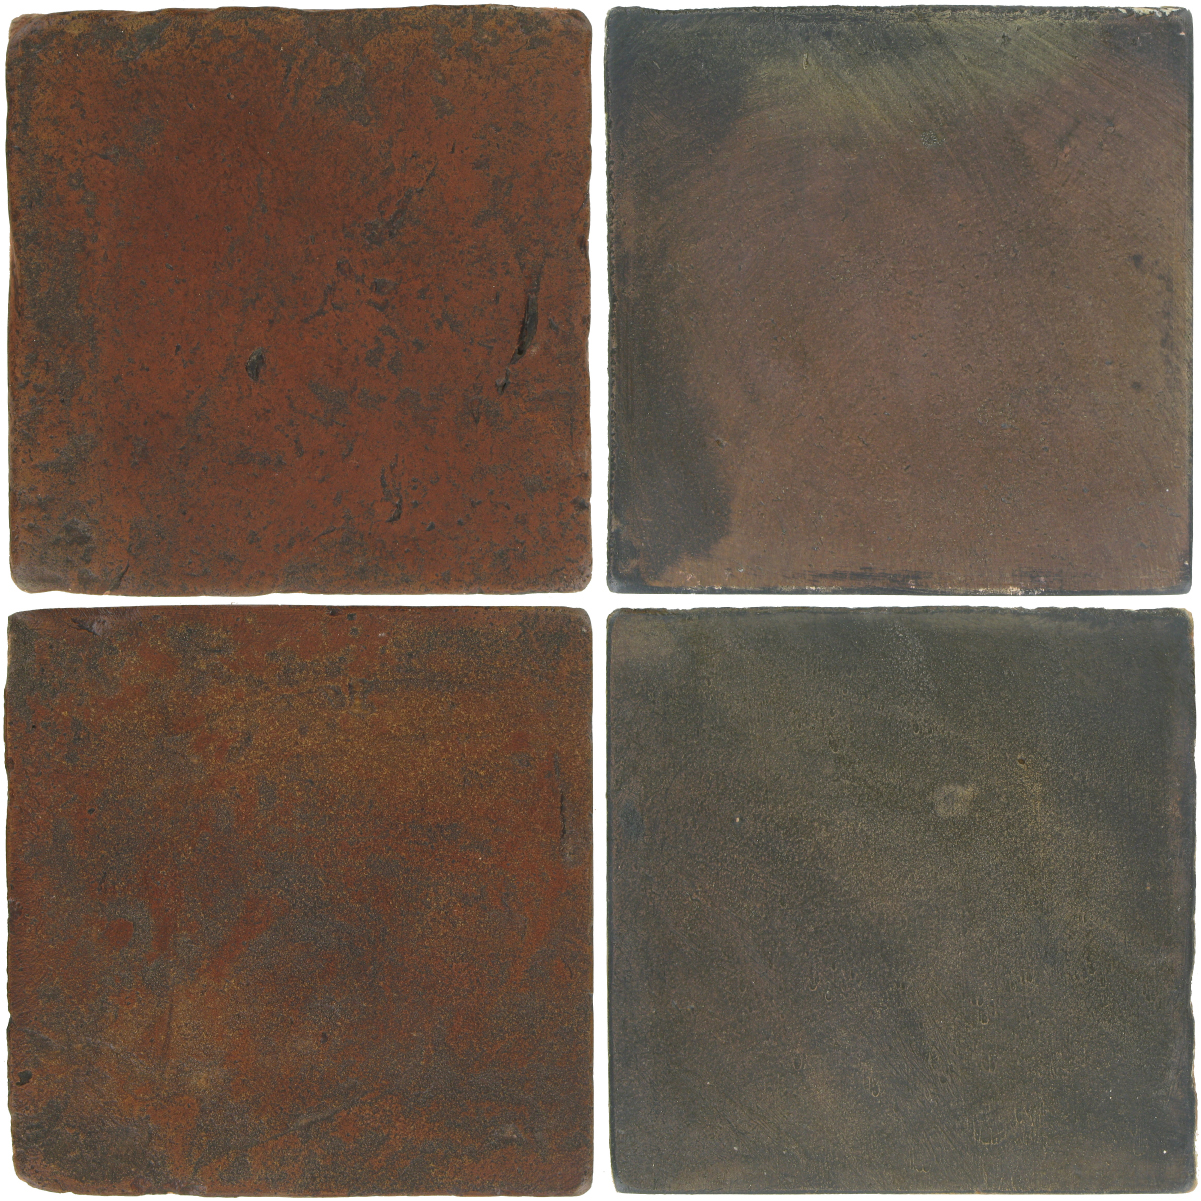 Pedralbes Antique Terracotta  2 Color Combinations  VTG-PSOW Old World + OHS-PSTG Terra Grey